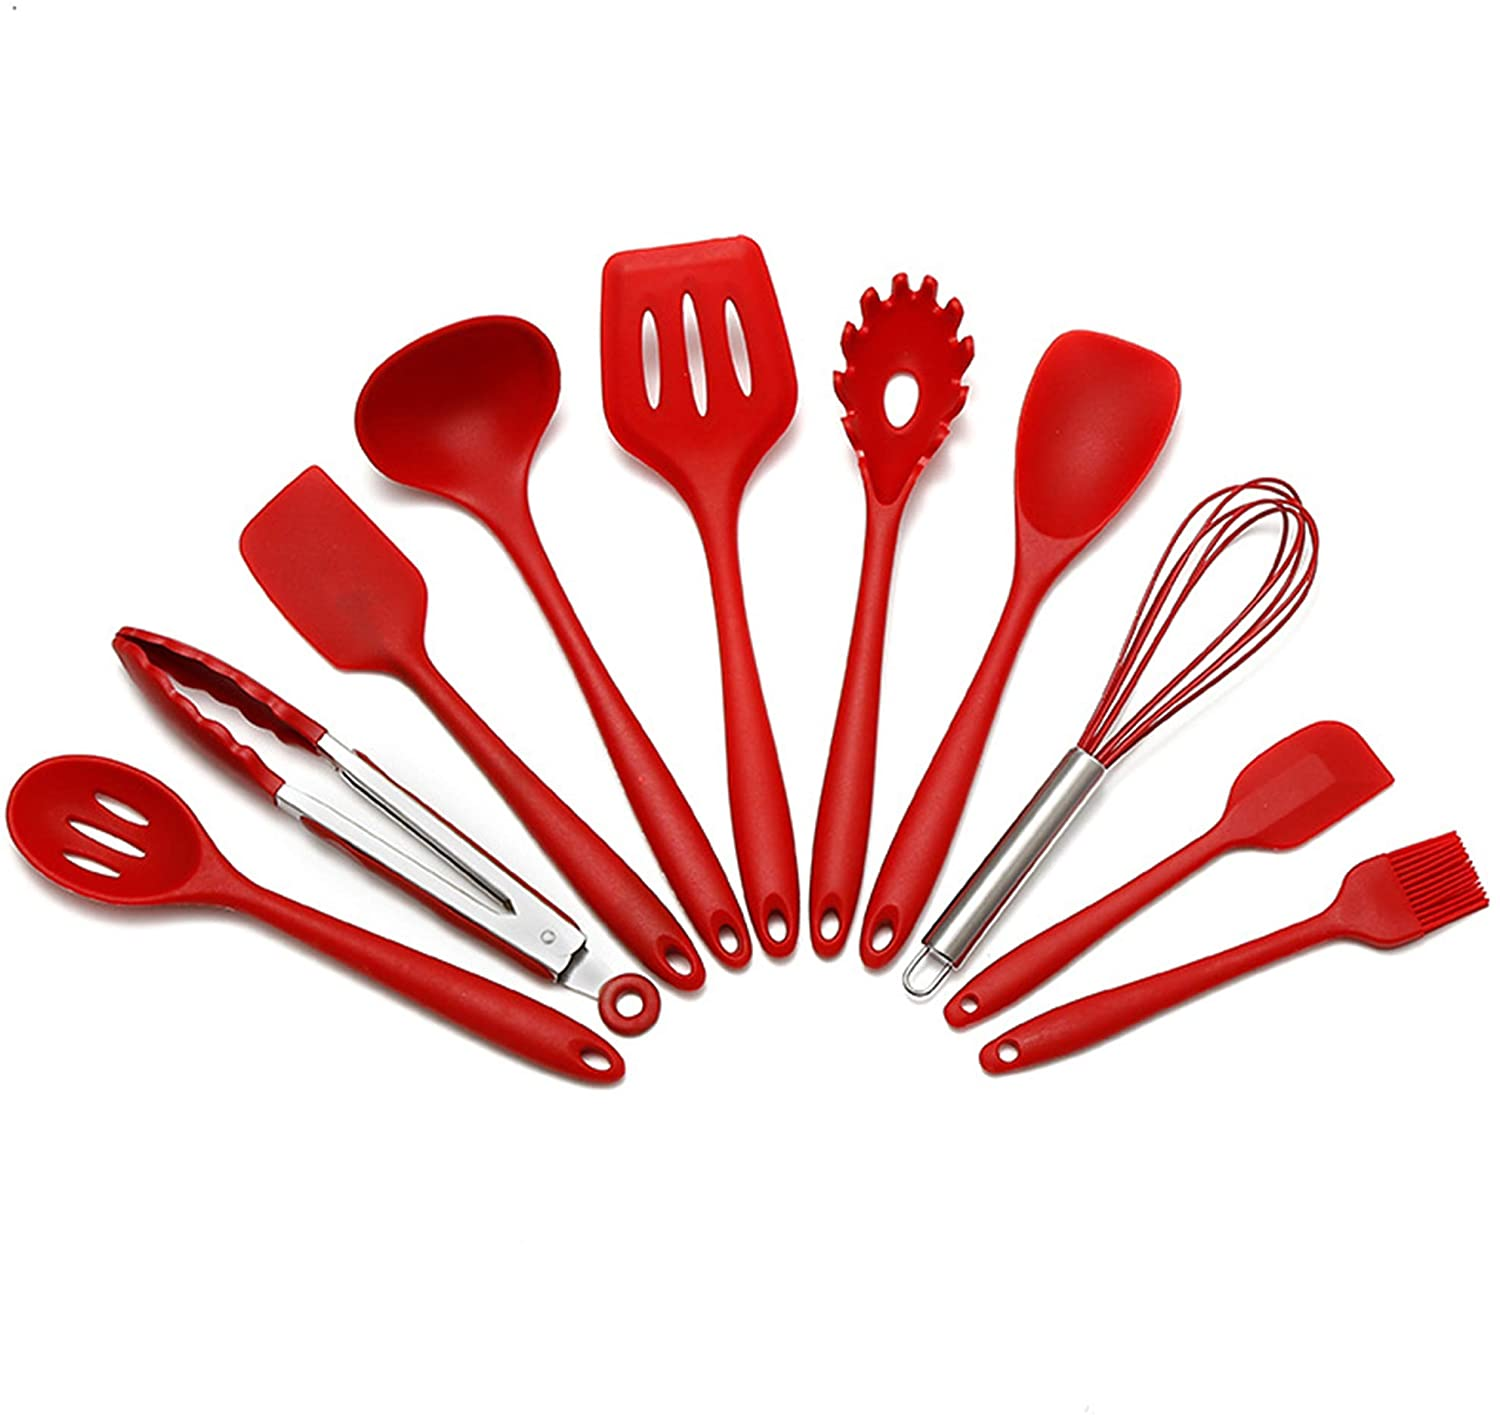 PDJW 10PCS Silicone Cooking Kitchen Utensils Set — Silicone Spatula set BPA Free Non Toxic—Turner Tongs Spatula Spoon Kitchen Gadgets Set for Nonstick Heat Resistant Cookware (Red)